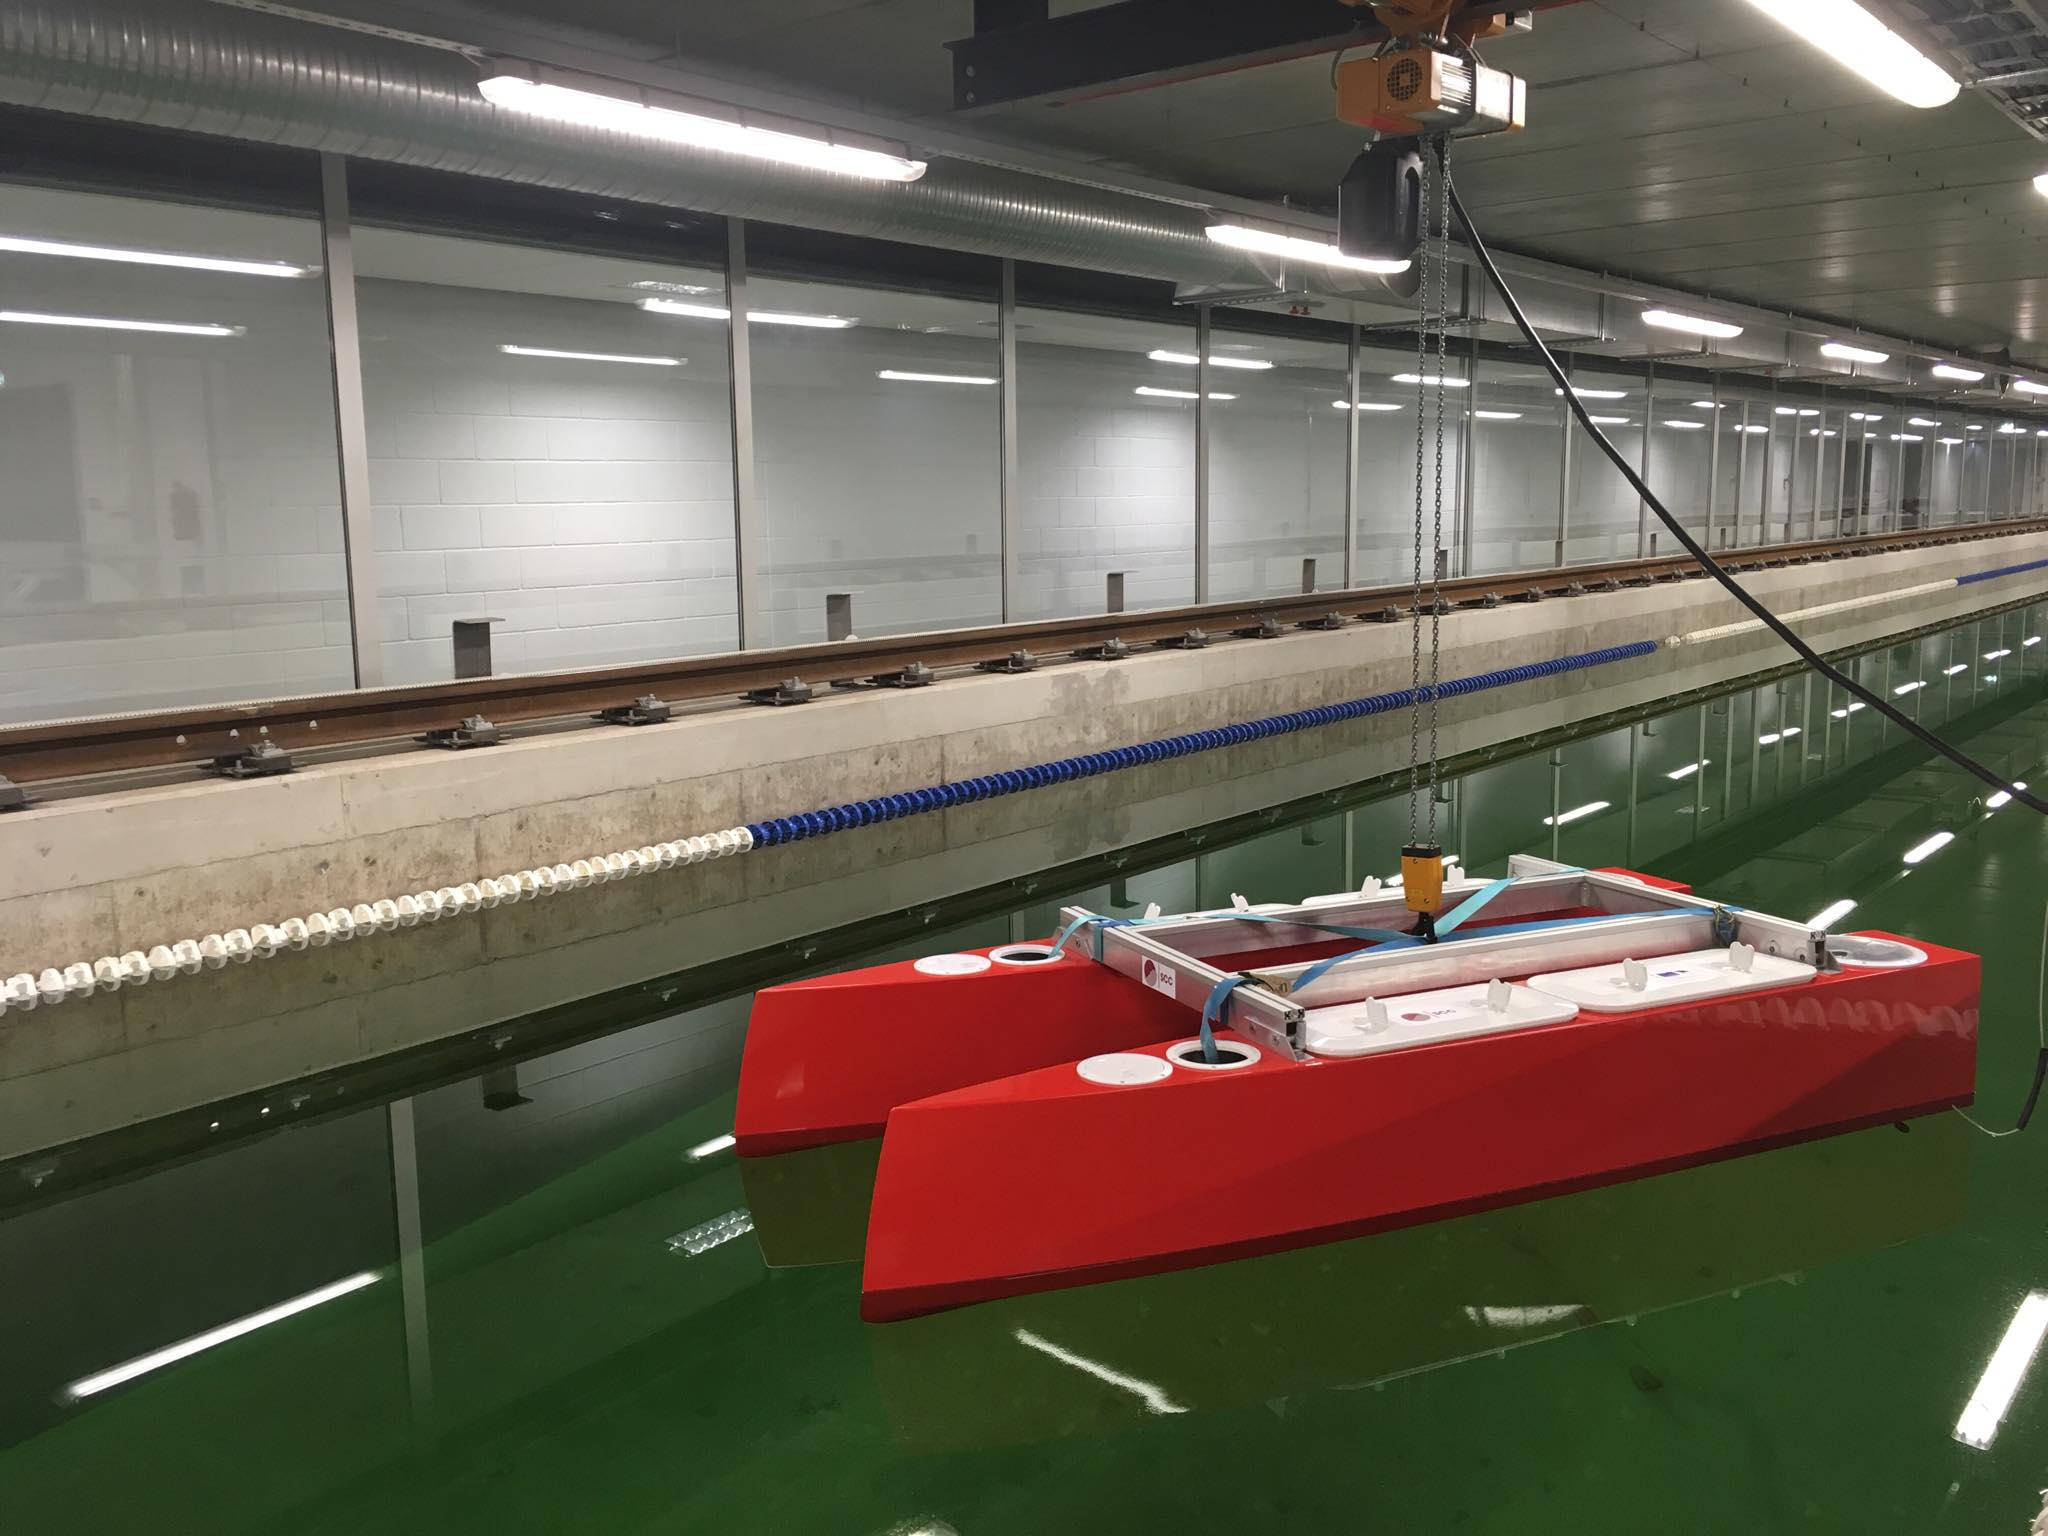 ASV Platform and Manoeuvring Test Development 2018-2019